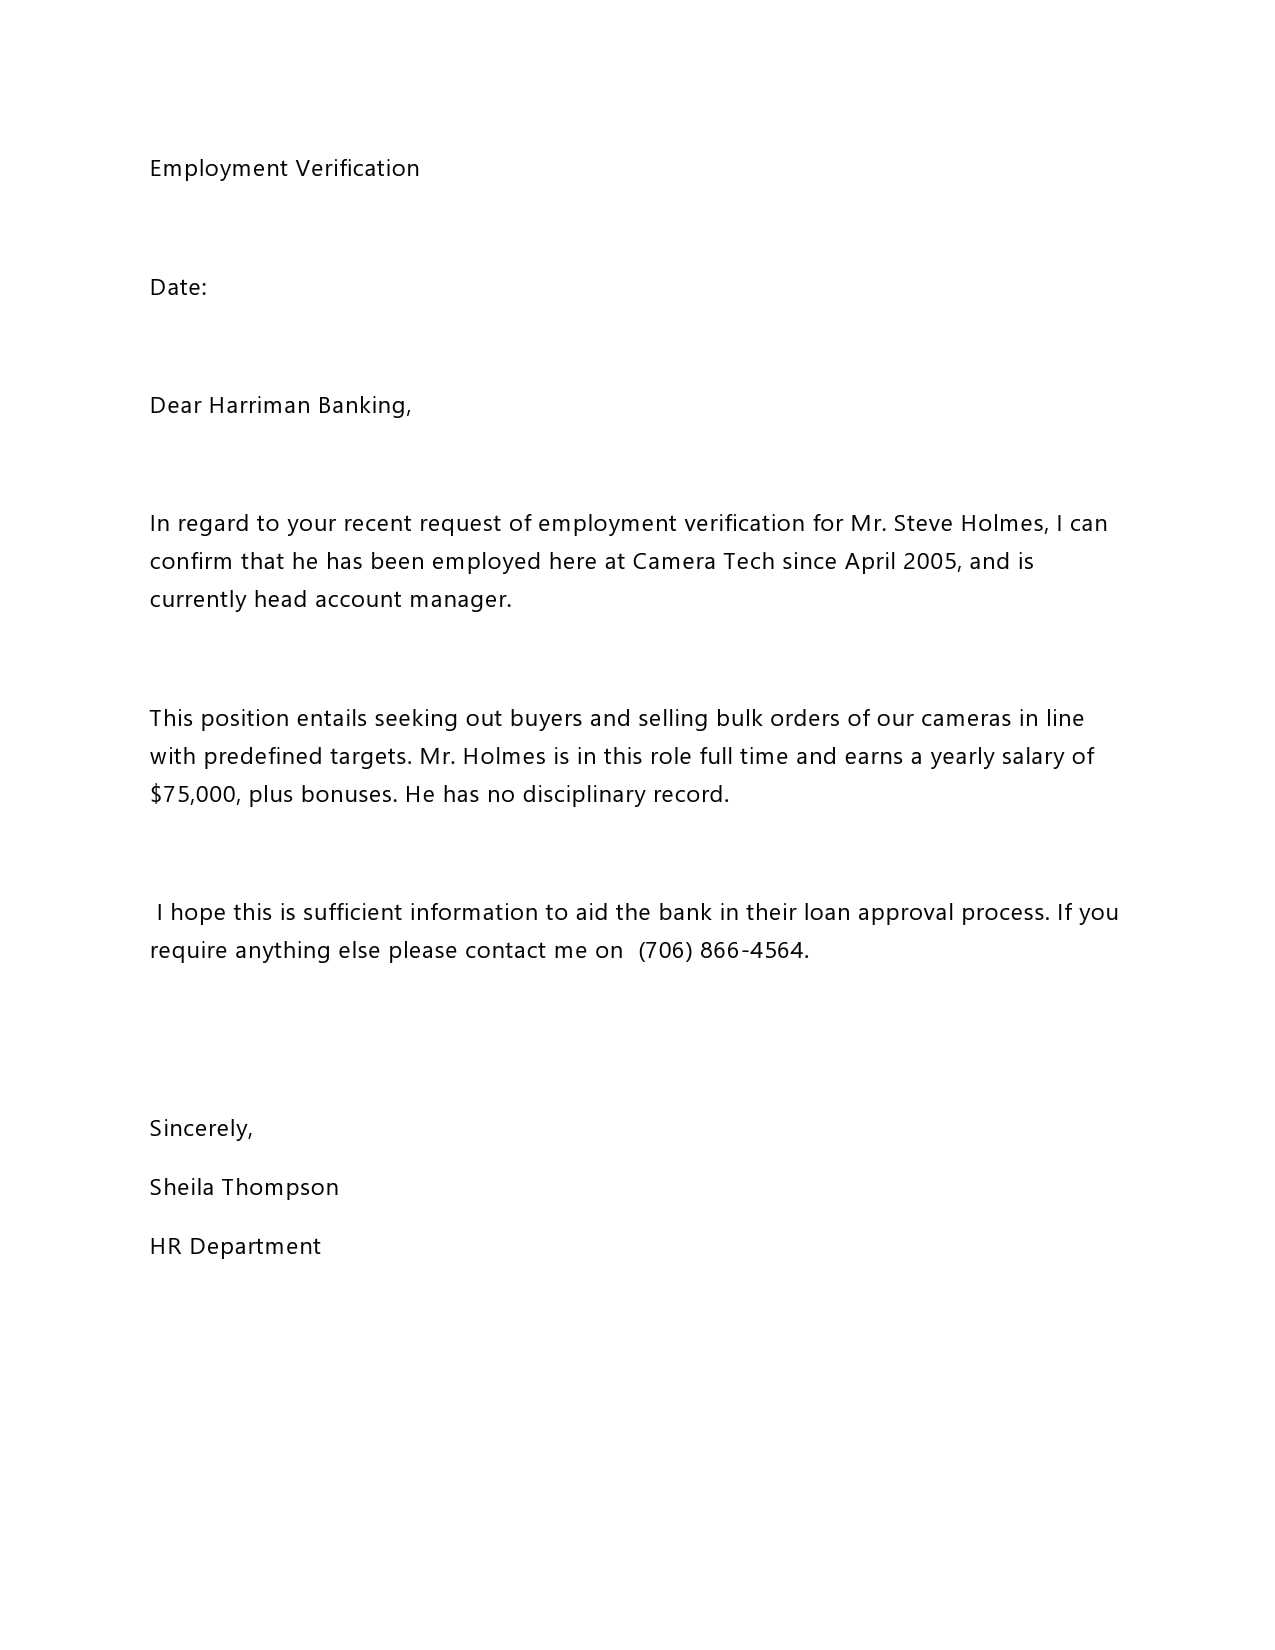 Sample Employee Verification Letter from templatearchive.com